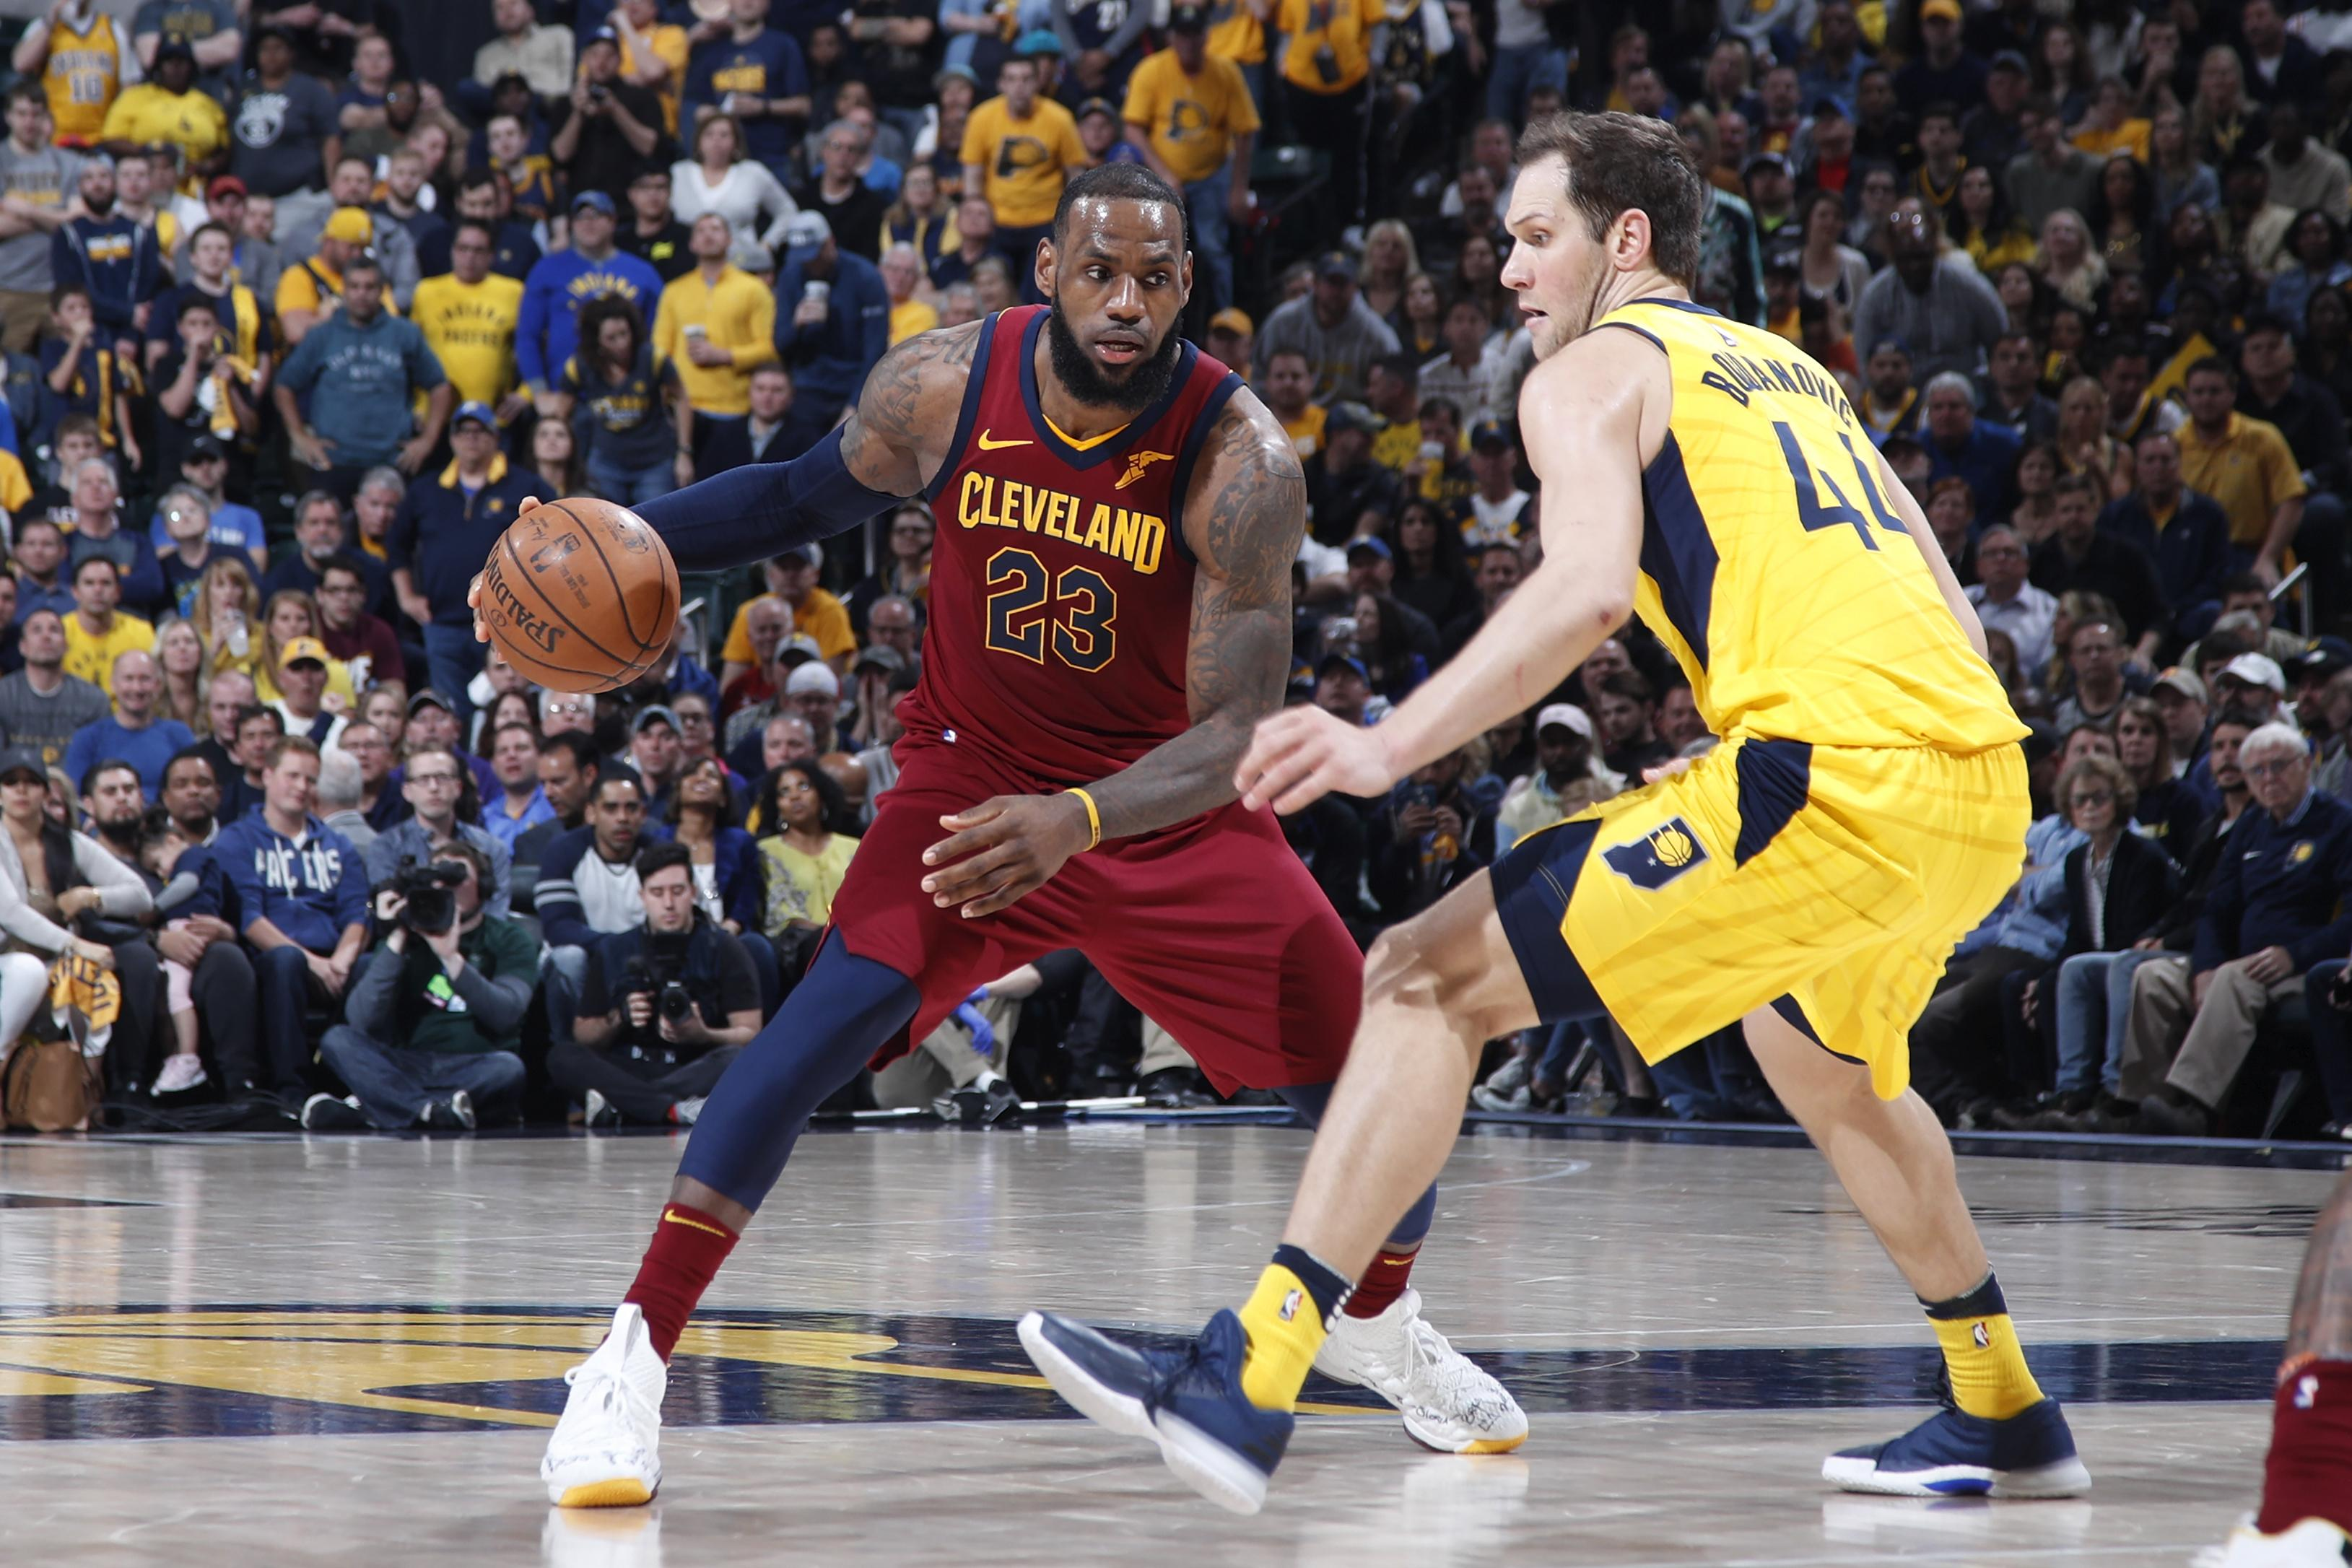 LeBron James' clutch performance saves Cleveland Cavaliers in Game 5